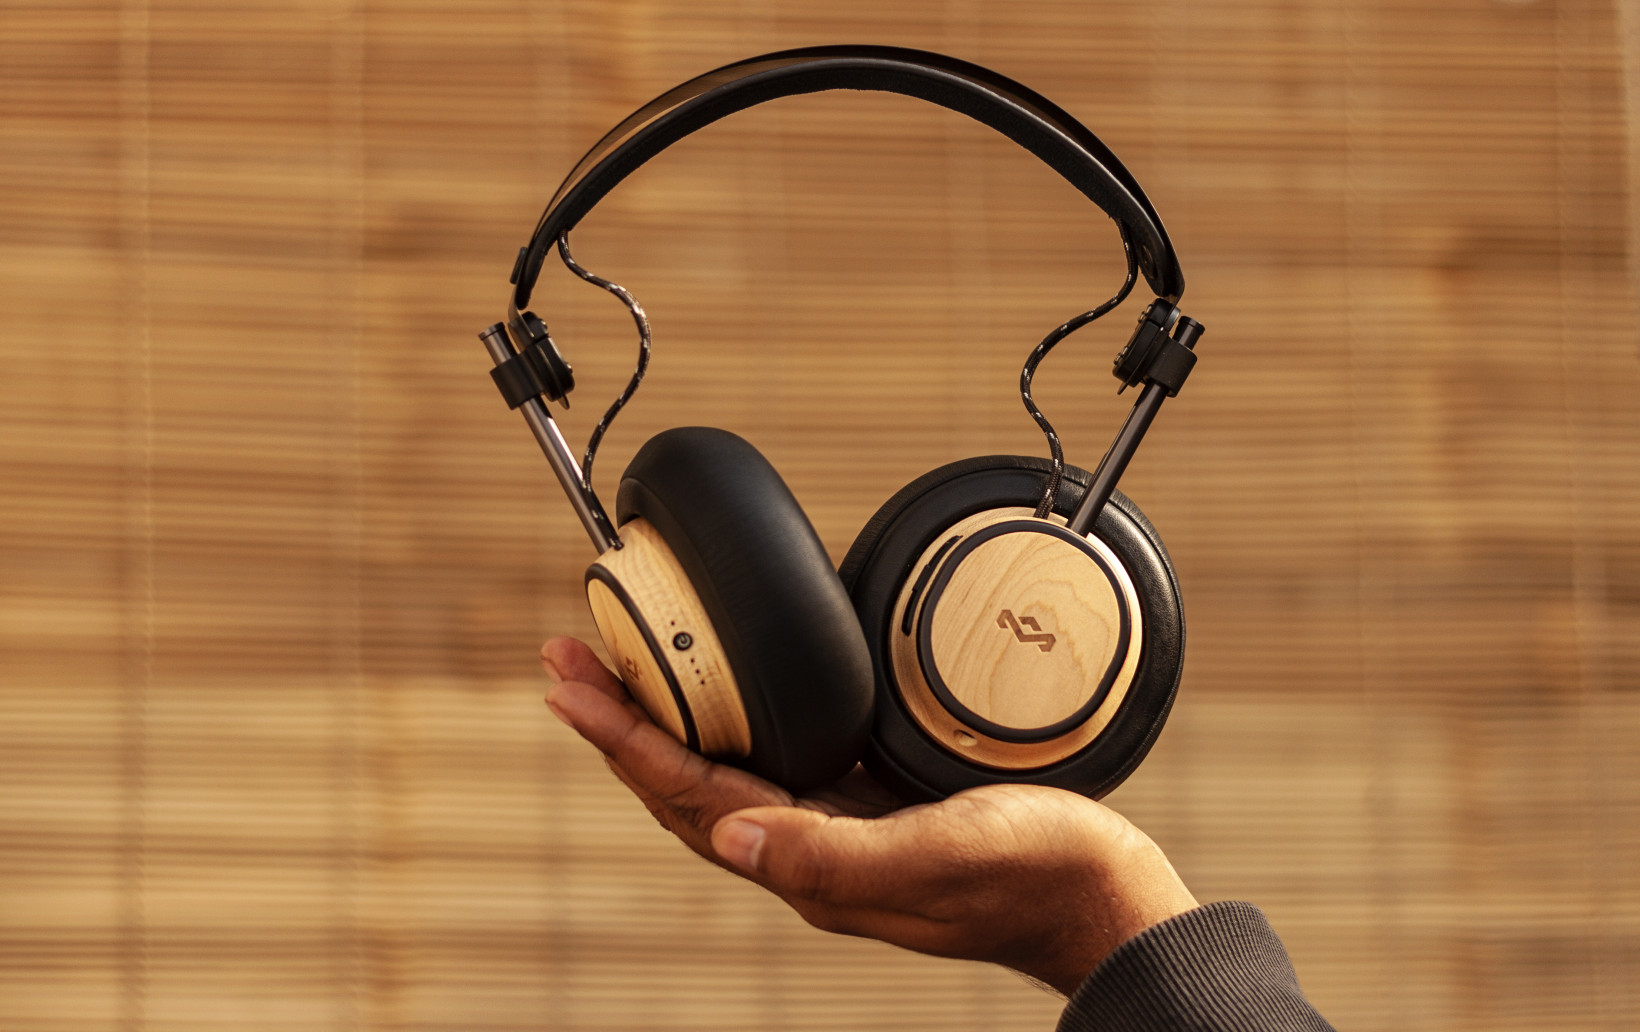 The Exodus headphones feature sustainably sourced wood with a light finish, which looks distinctive without being overly loud